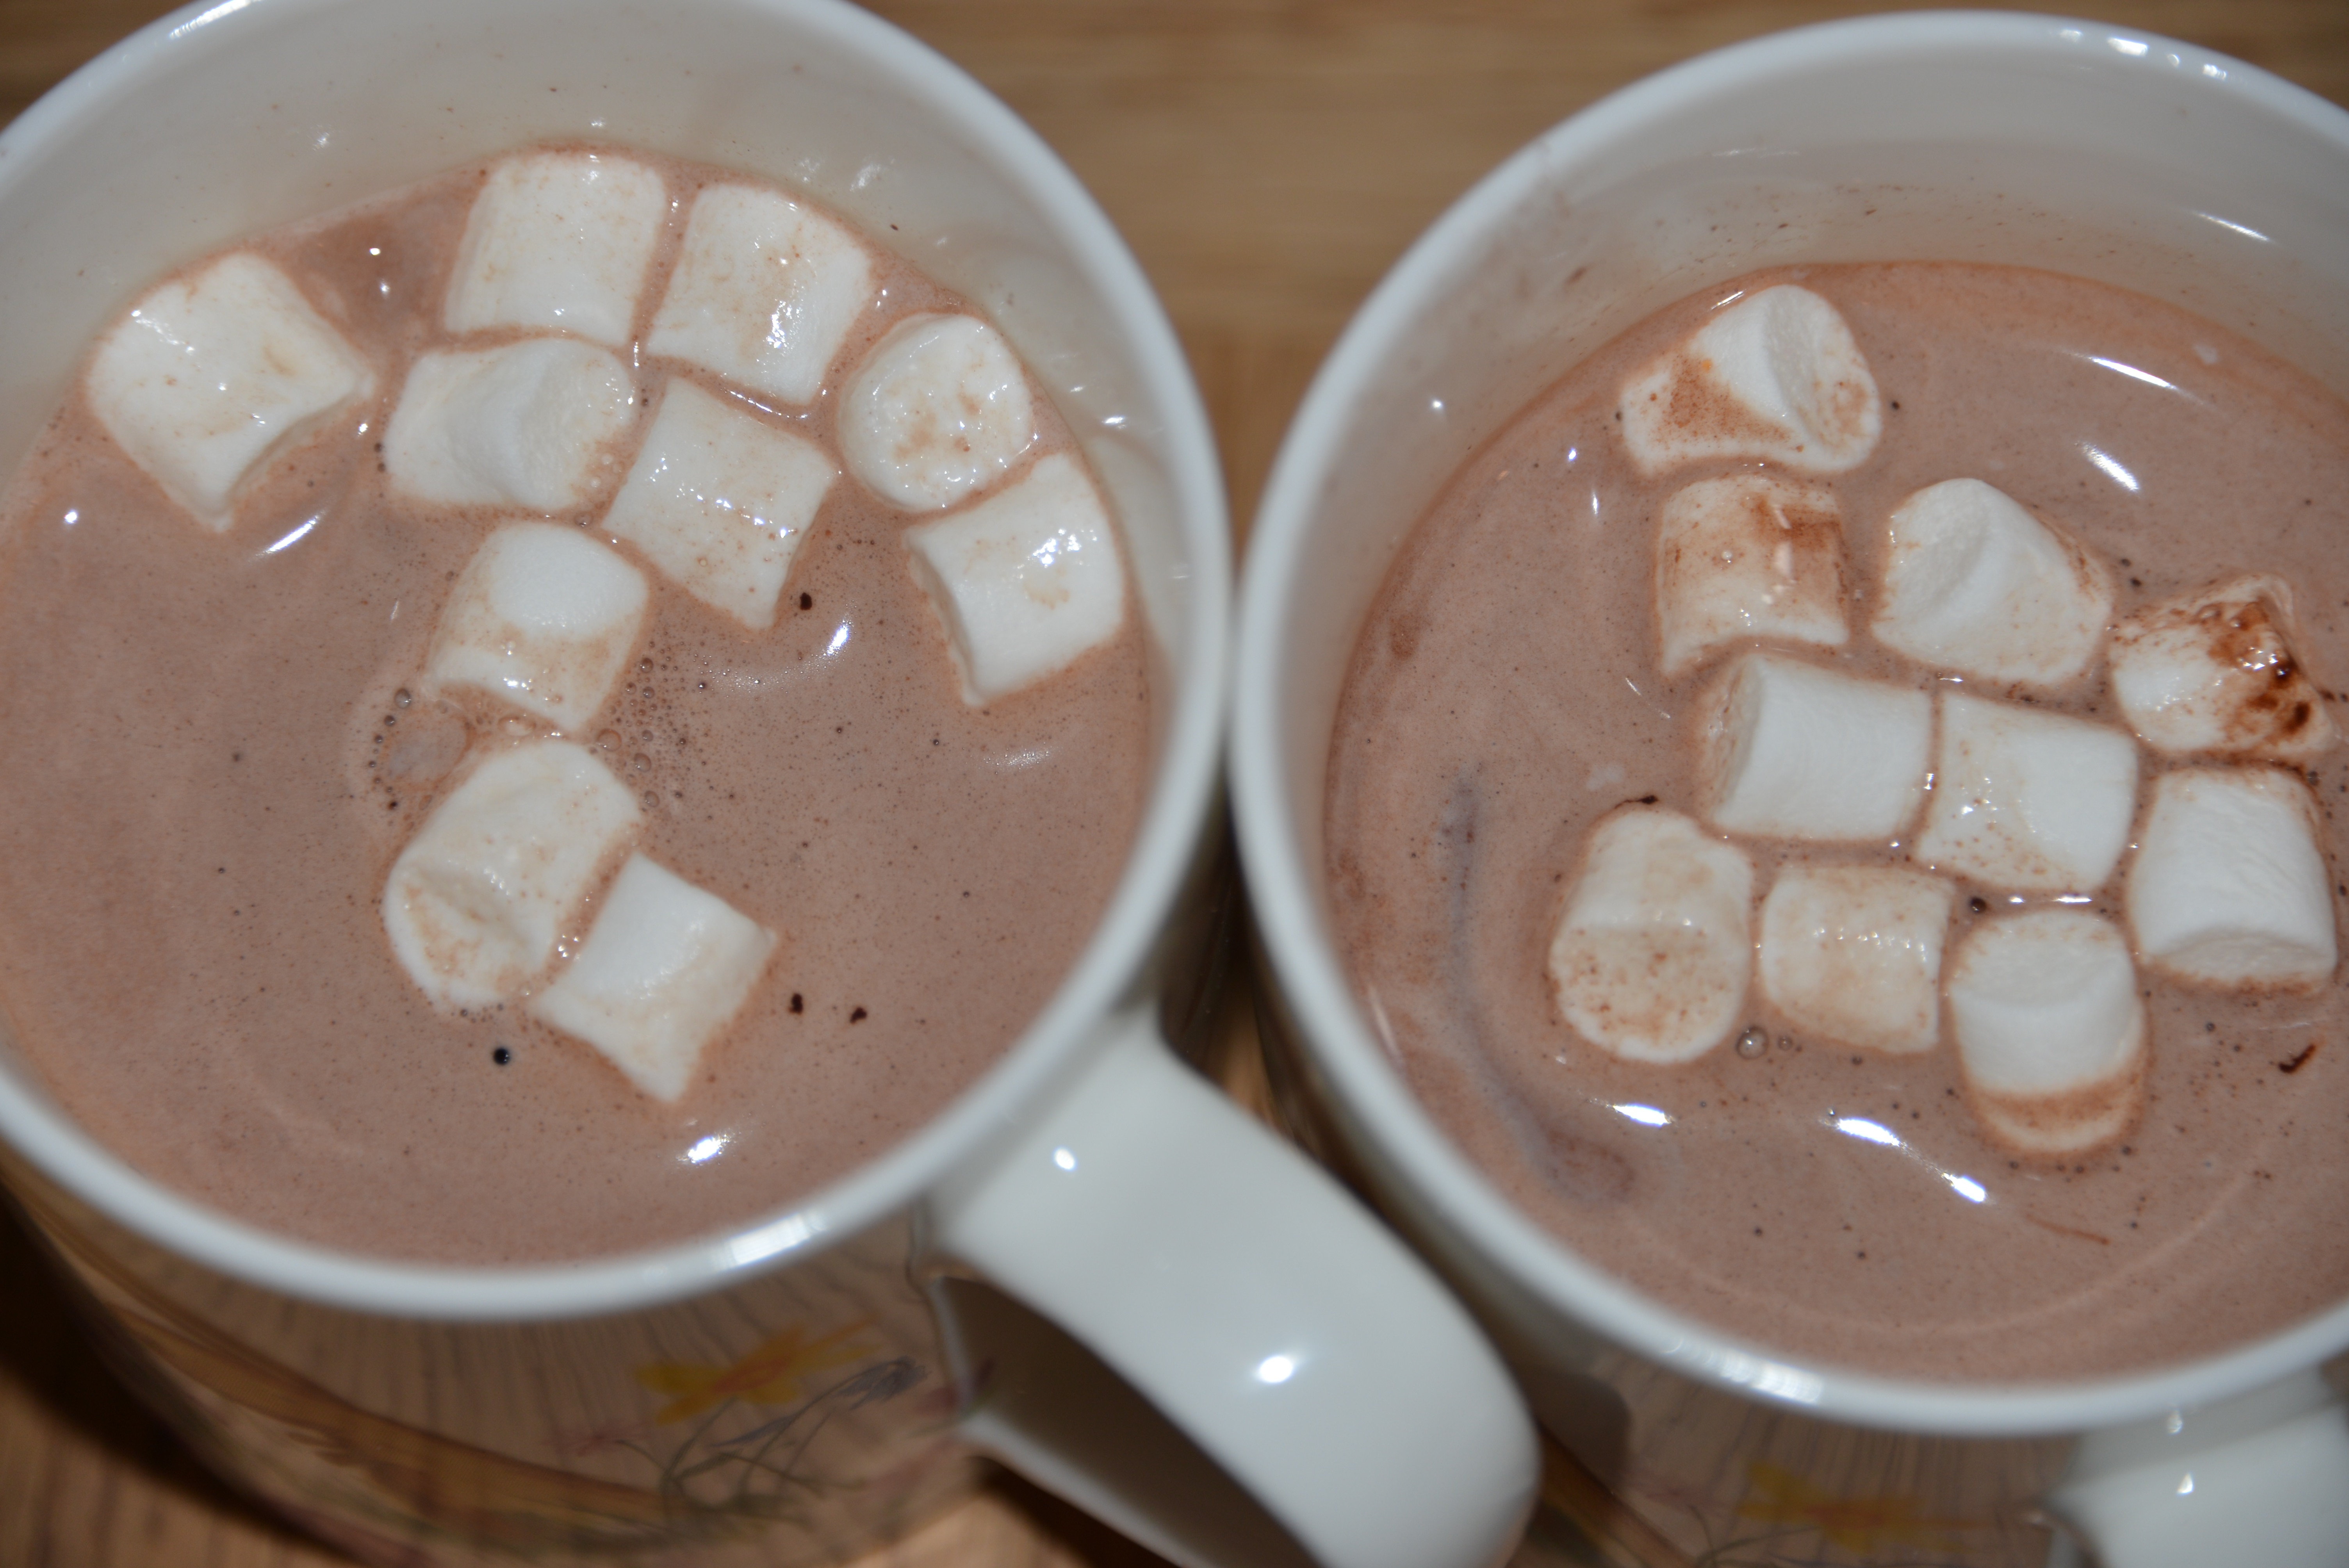 Hot chocolate science